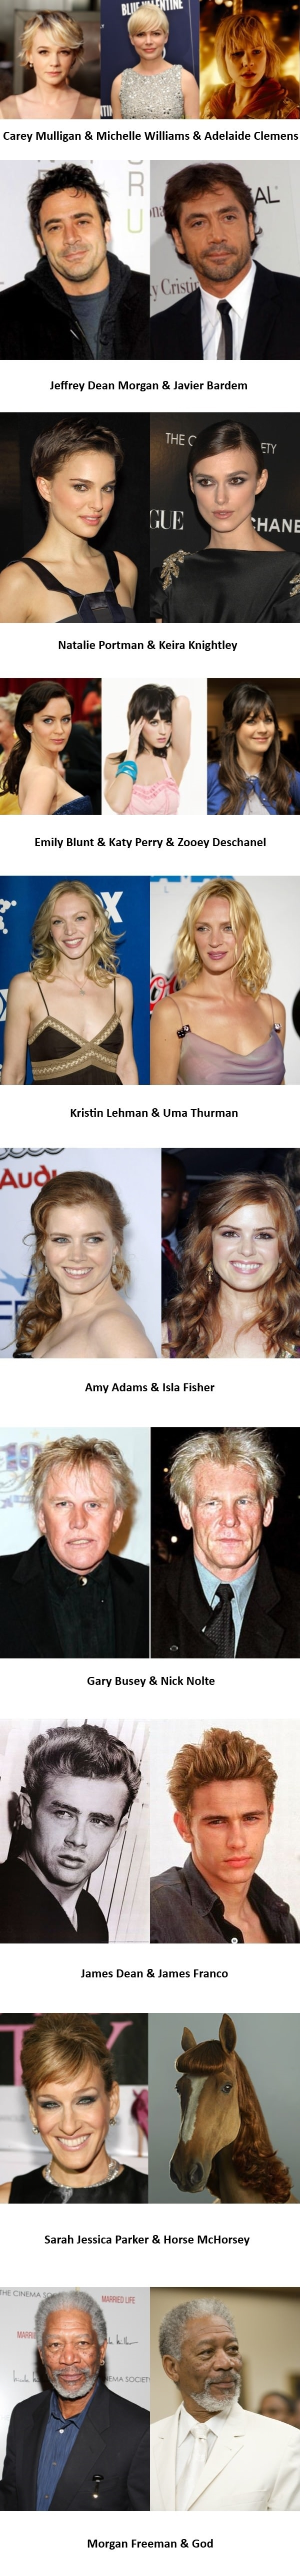 Similar looking celebs